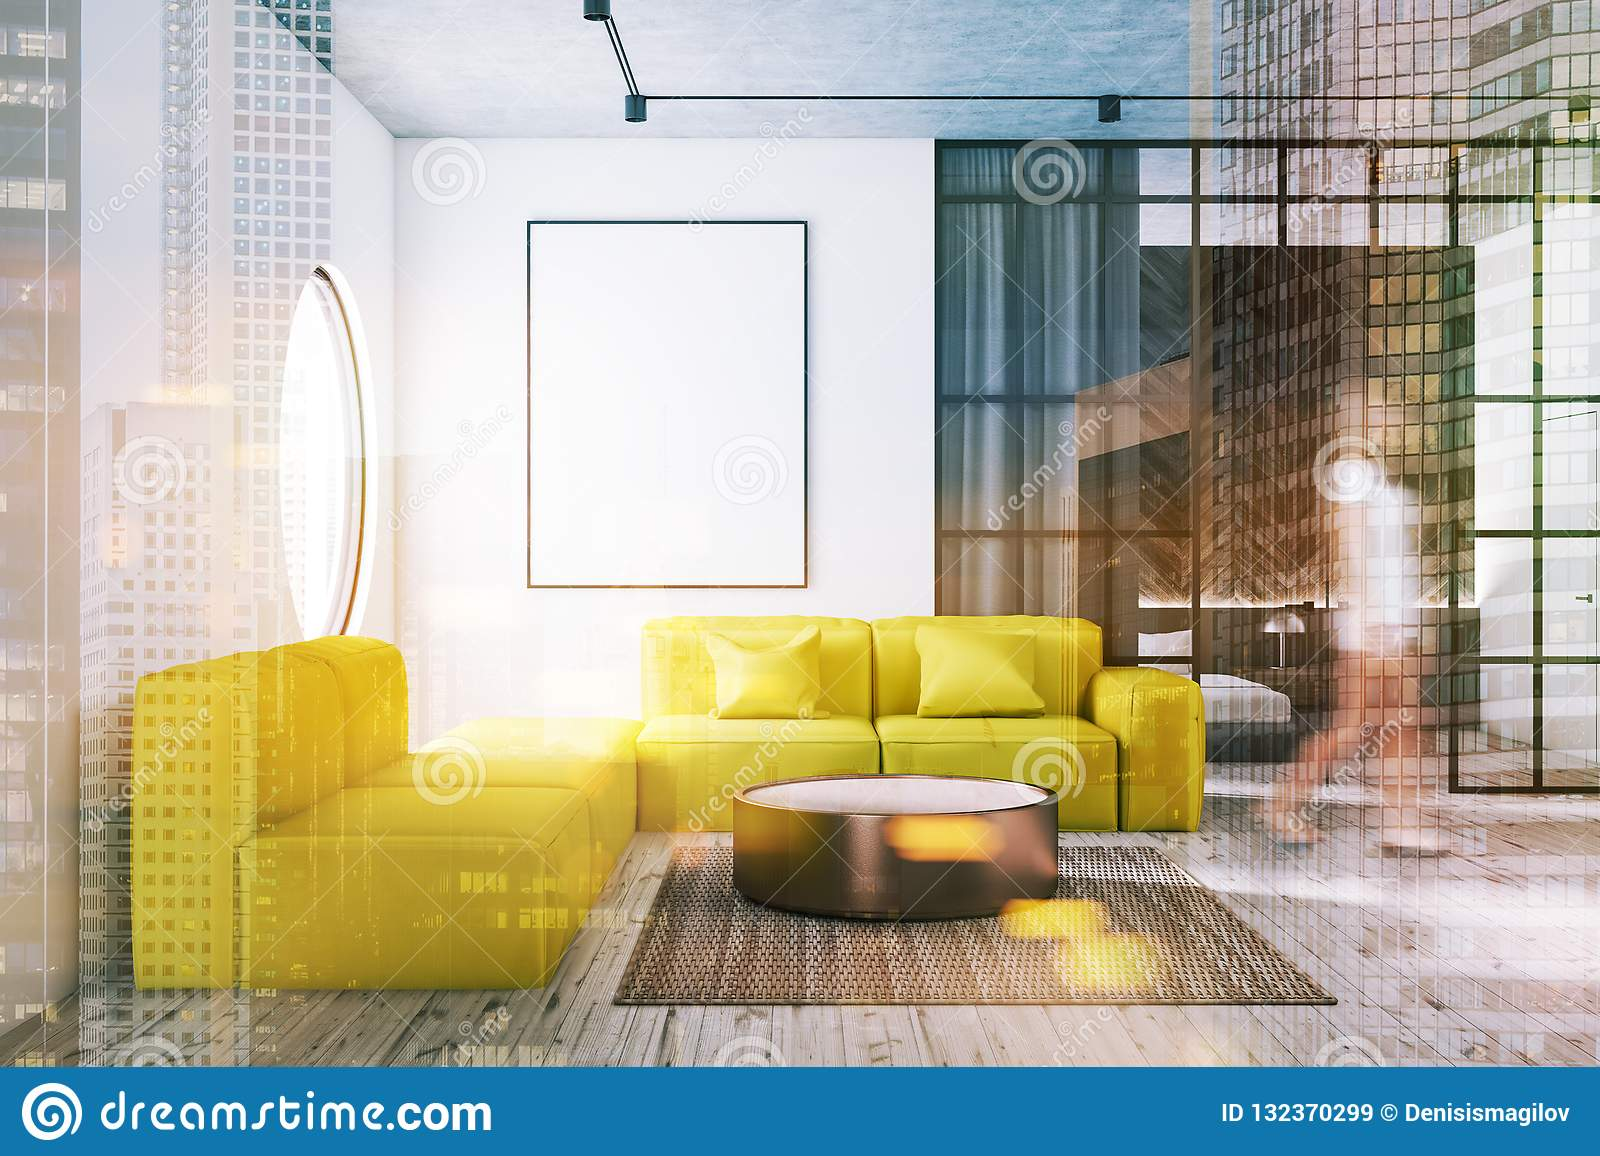 Living Room With Yellow Sofa And Poster Woman Stock Image Image